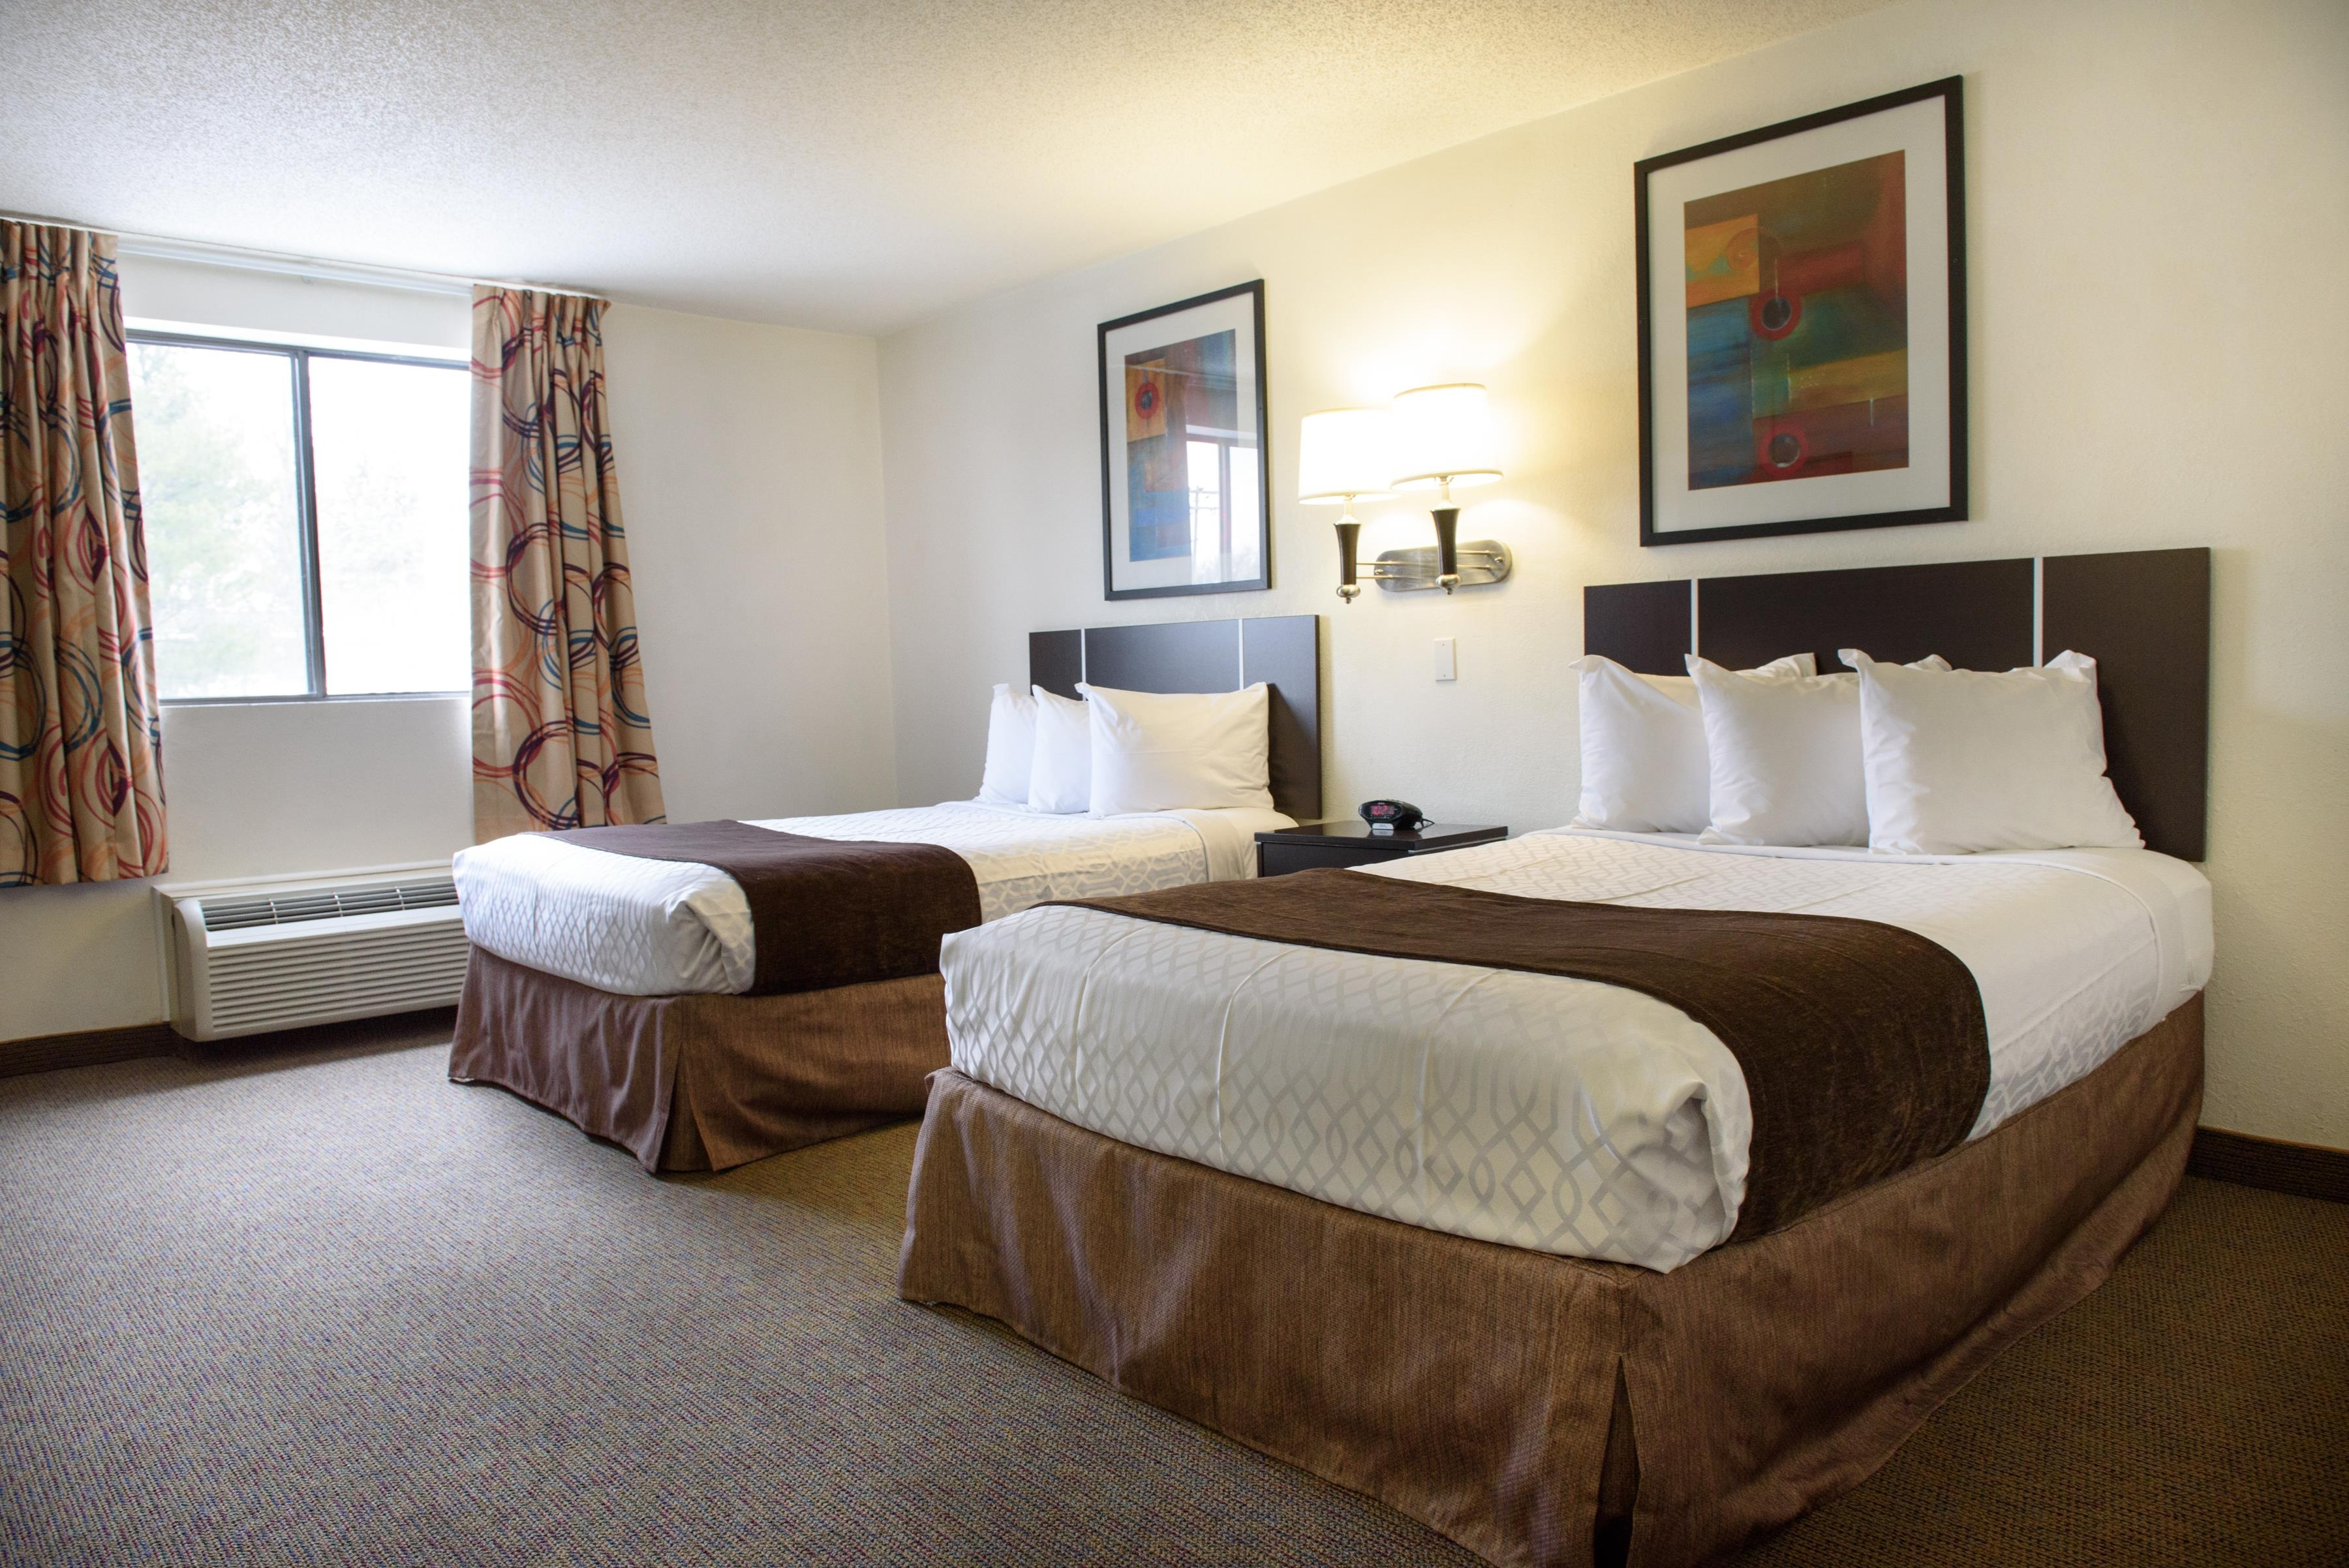 Americas Best Value Inn - New Paltz image 17